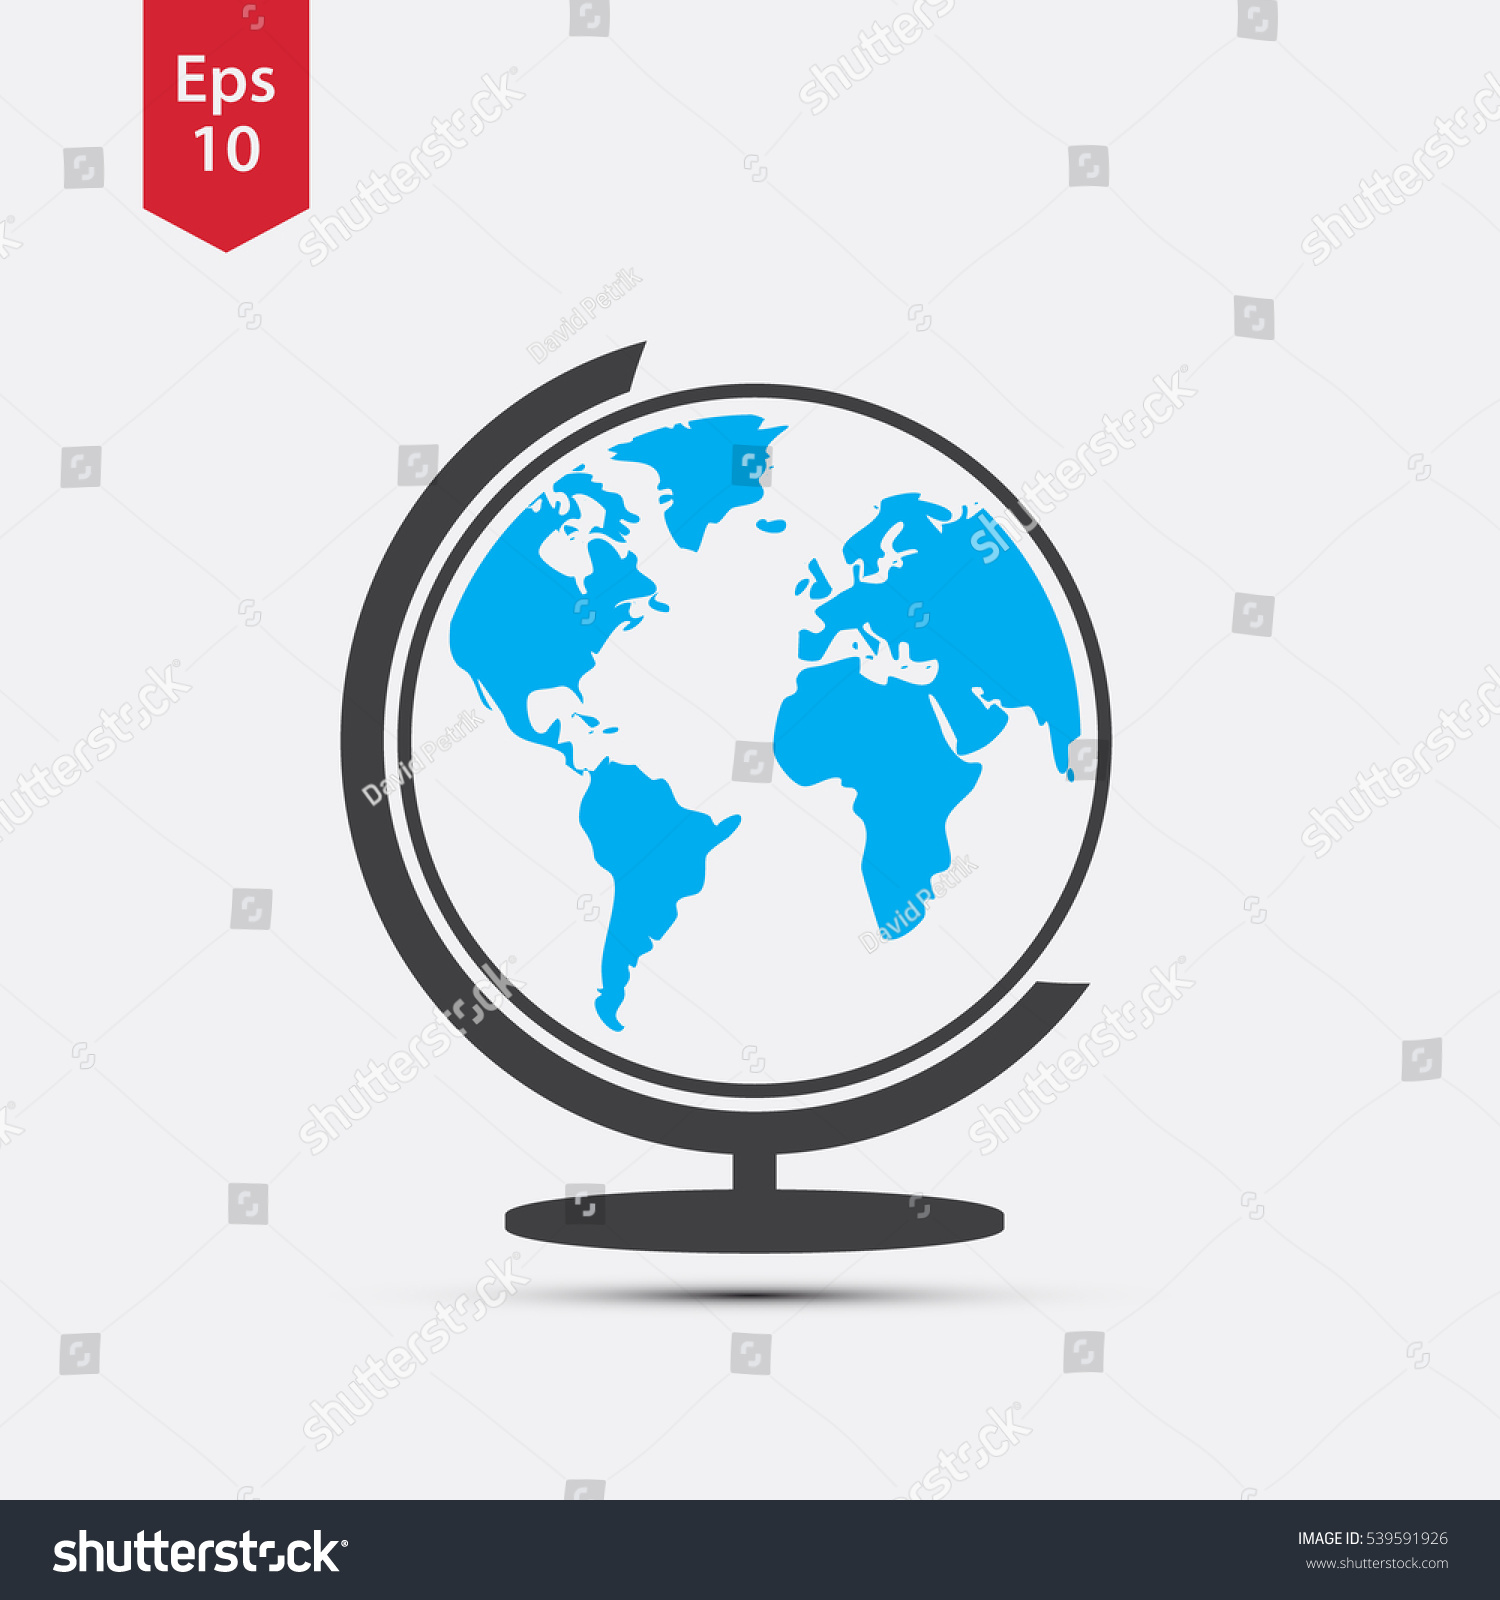 Simple globe icons earth flat sign vectores en stock 539591926 simple globe icons earth flat sign symbol of world map vector illustration gumiabroncs Gallery